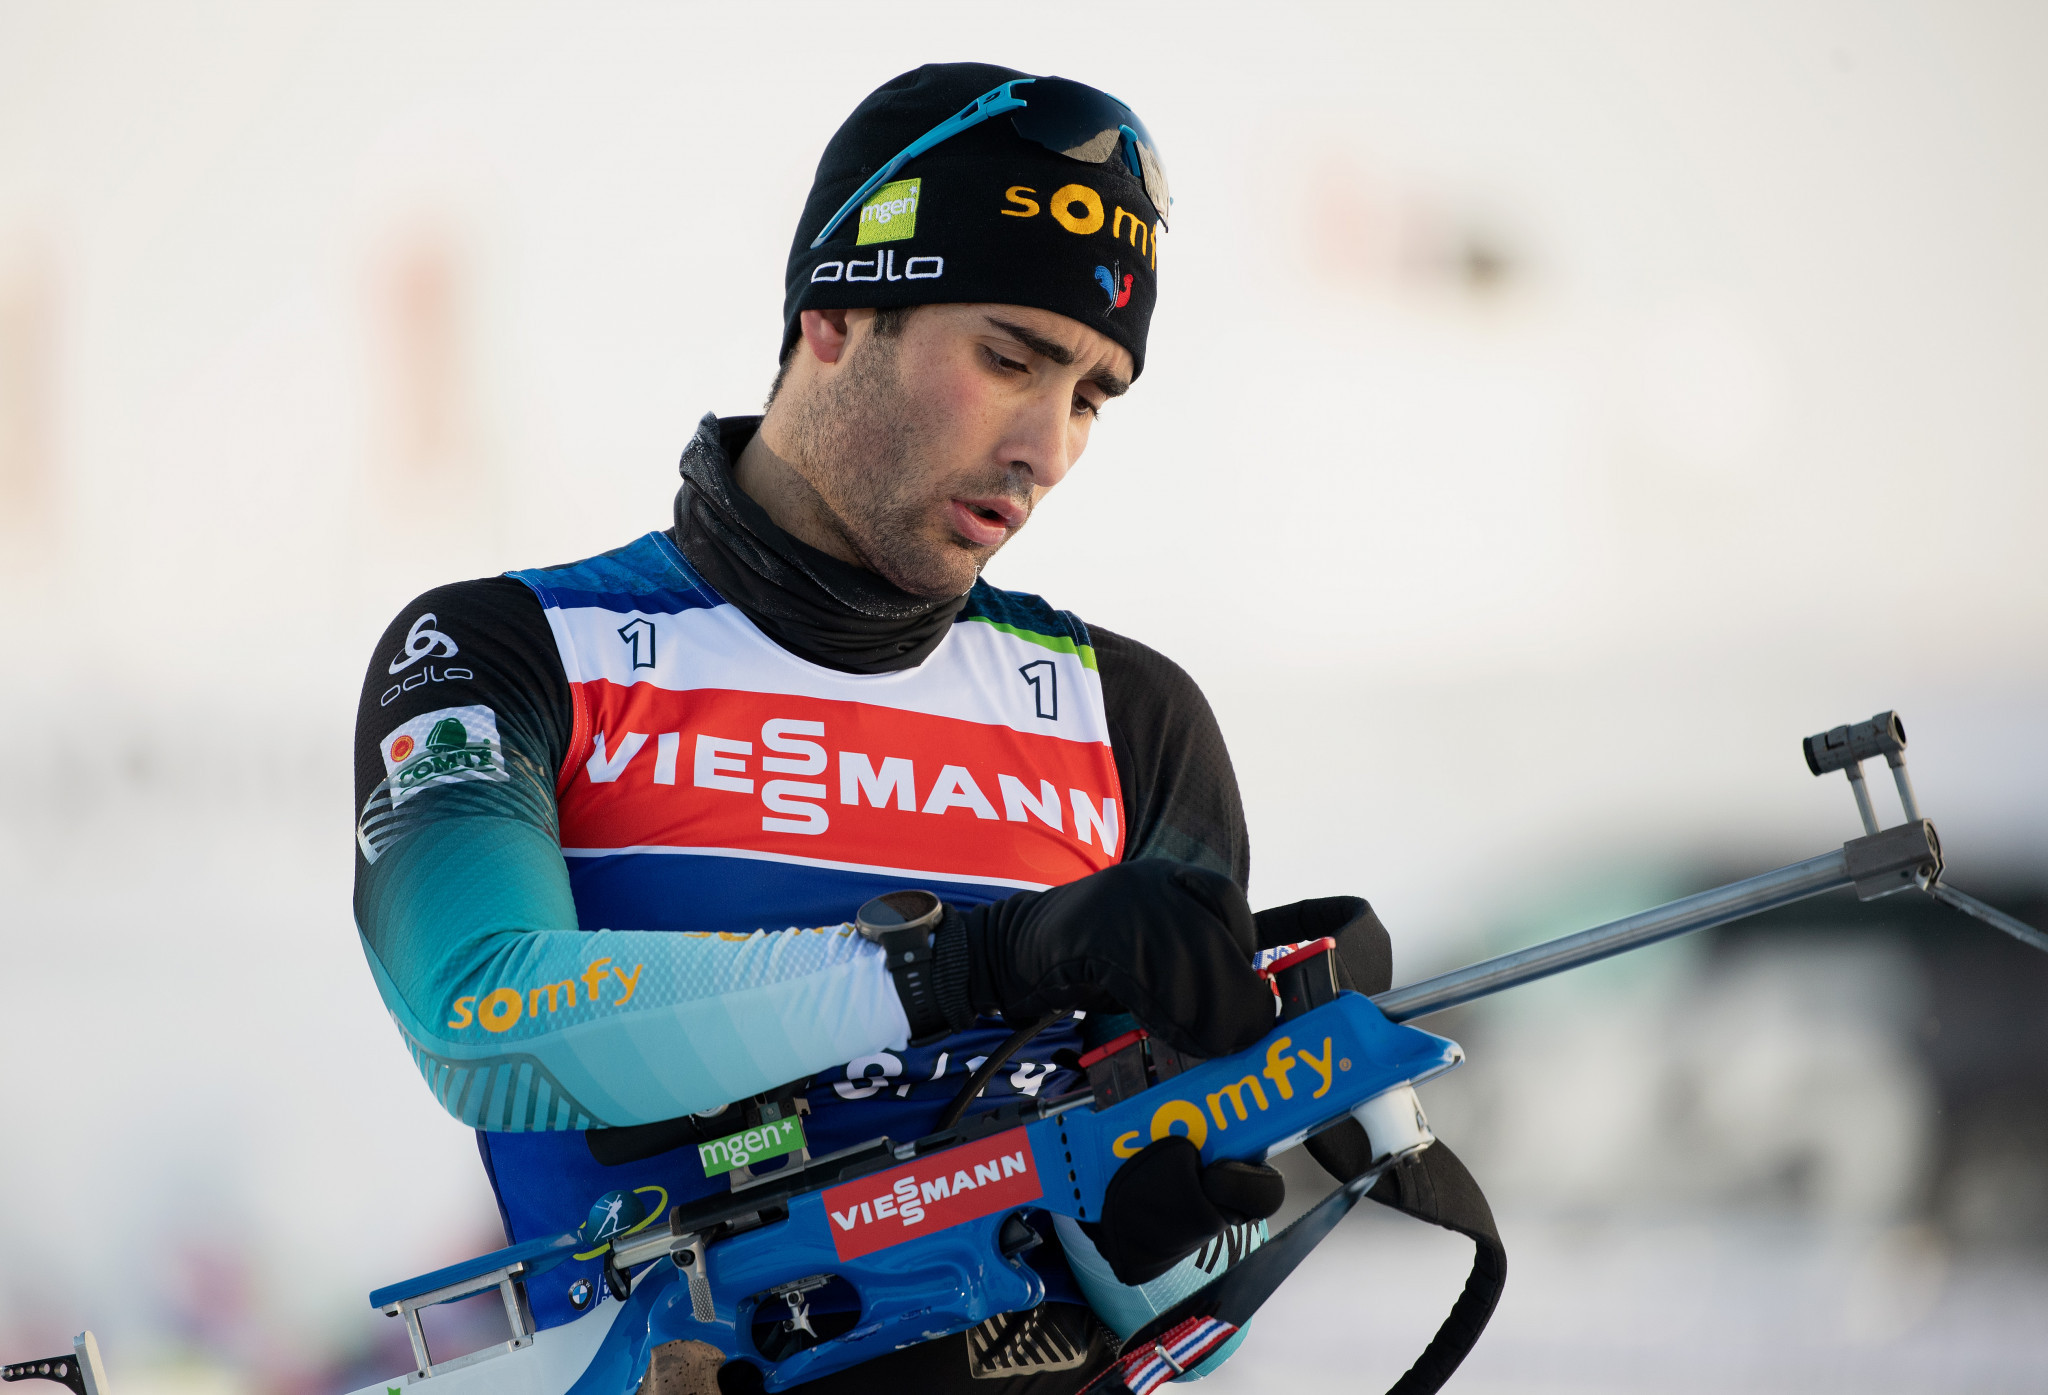 Martin Fourcade shot clean at the range but had to make do with second spot ©Getty Images